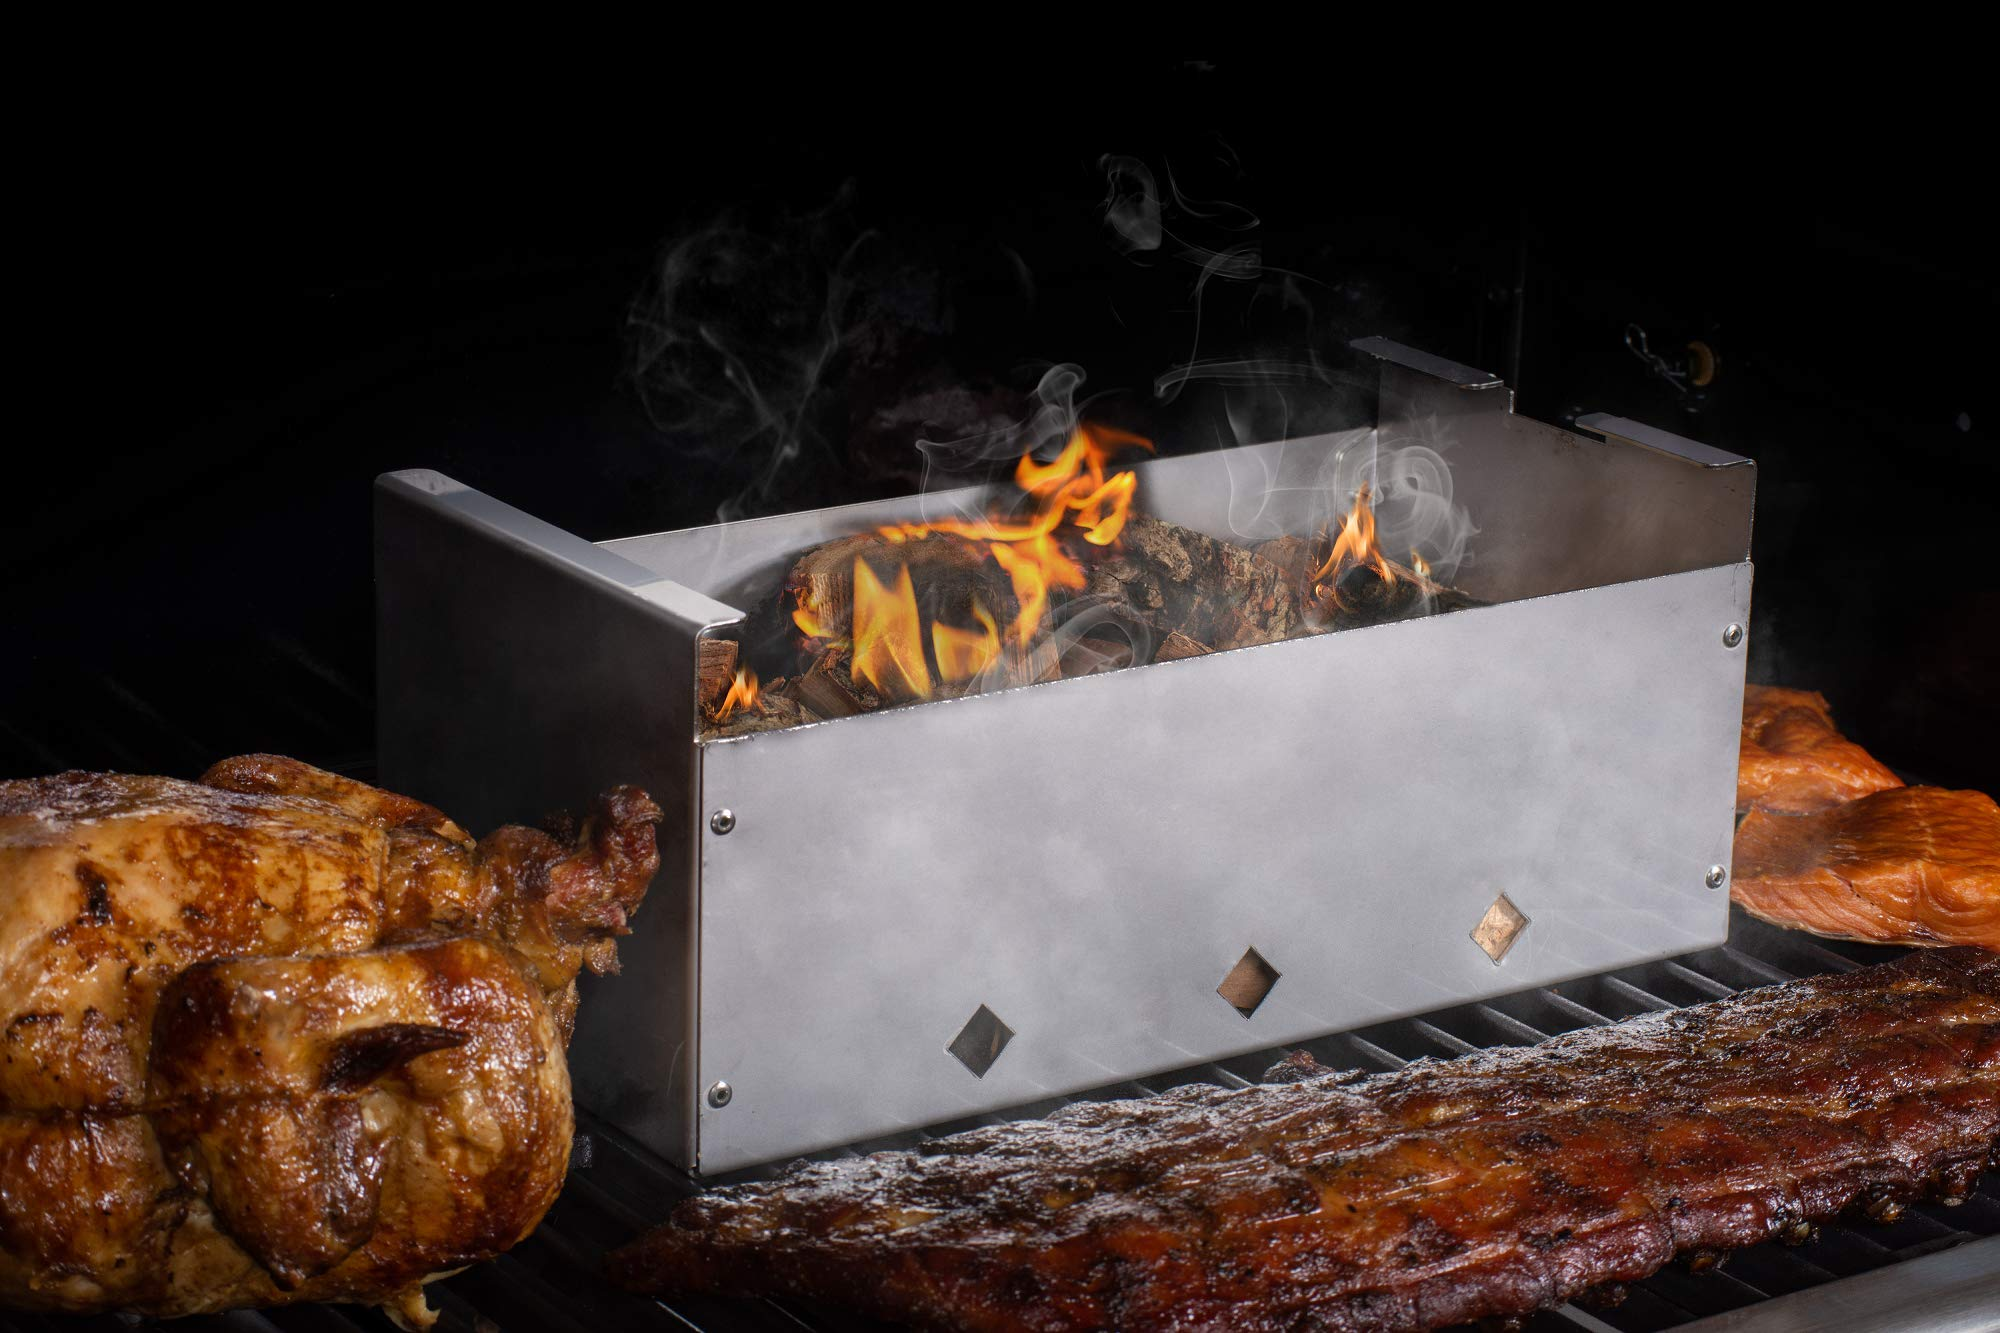 DKS Smoker Cooker Box for Grill | Turn Any BBQ Grill Into A Smoker | No Propane or Charcoal Needed | Provides All The Heat and Smoke to Cook Any Food (432 cu inches) by DiamondKingSmoker